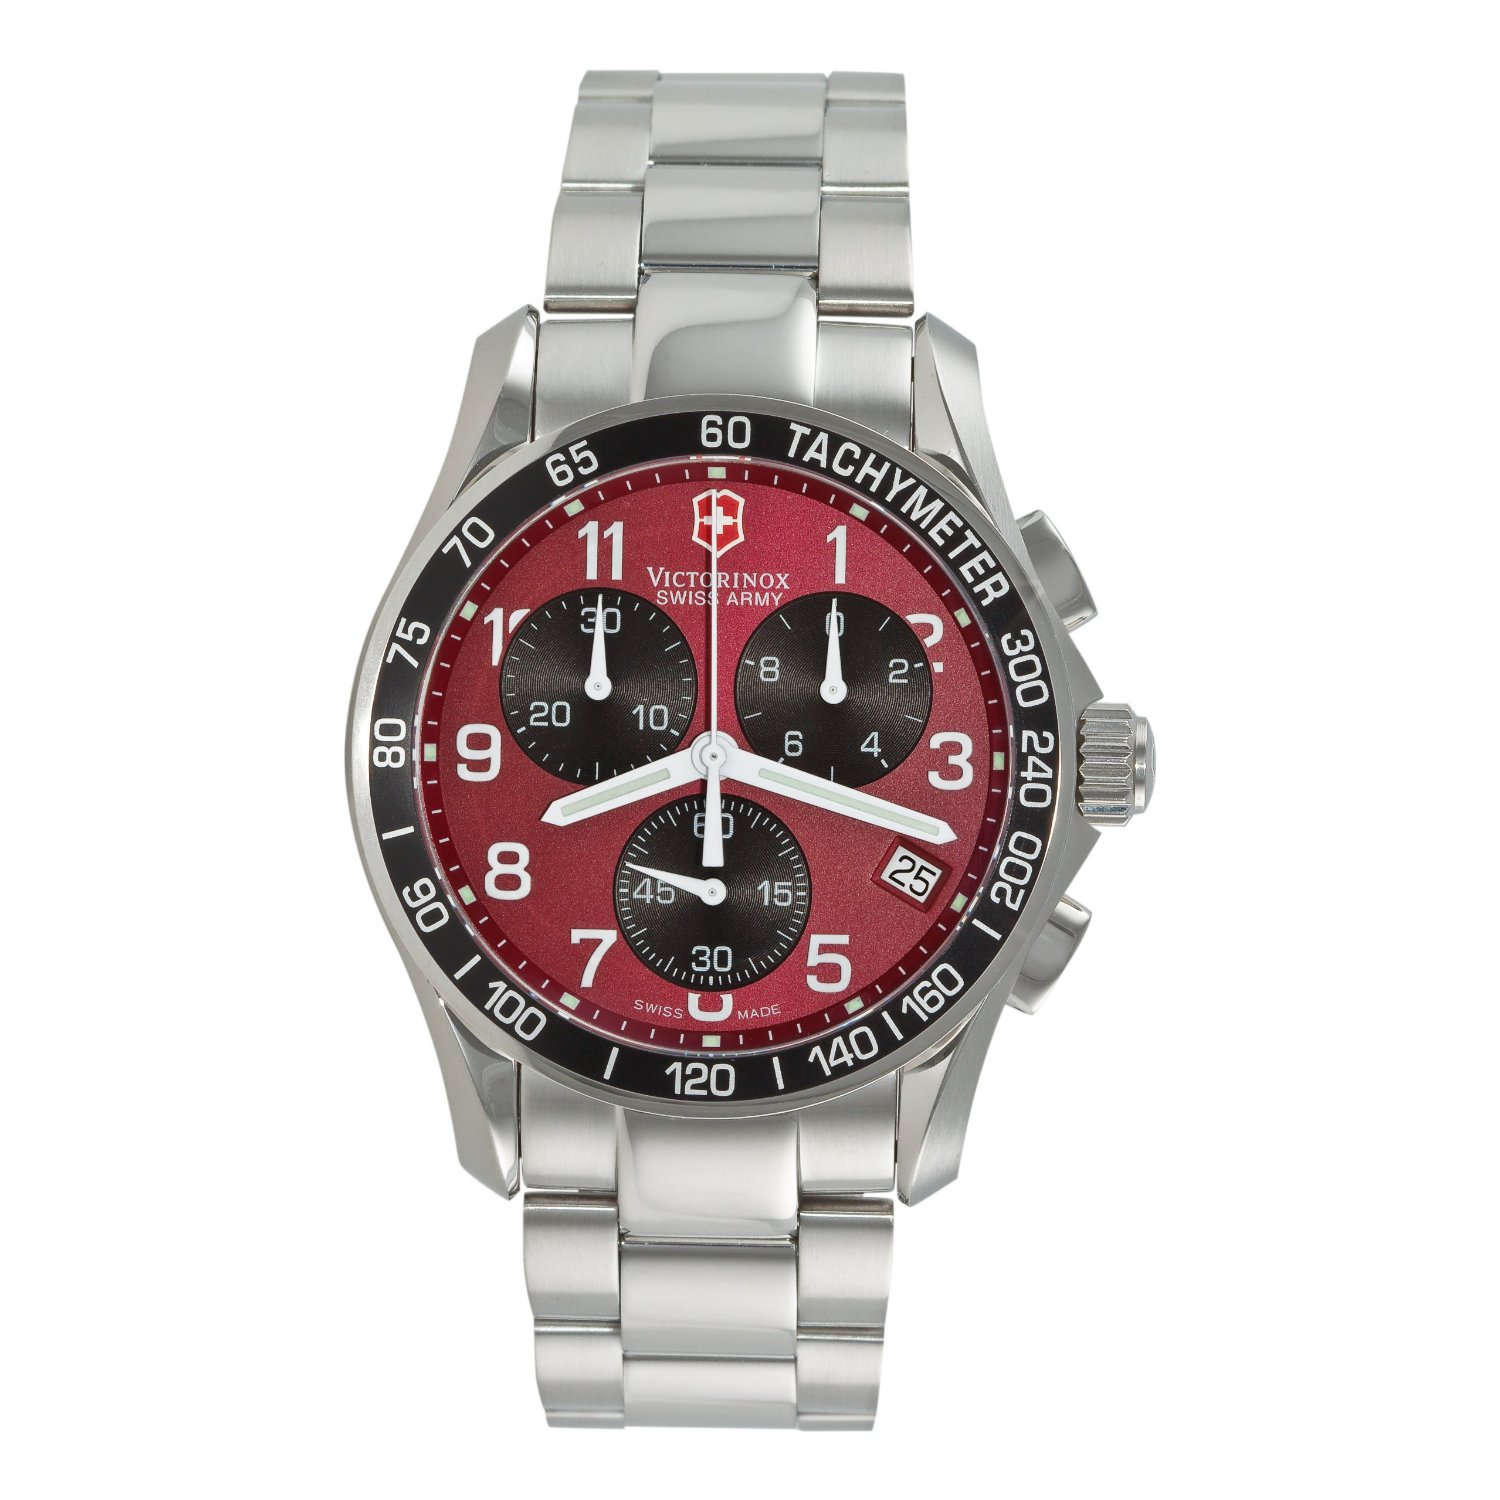 Victorinox Swiss Army Men's 241148 Chronograph Classic Red Dial Wrist Watch